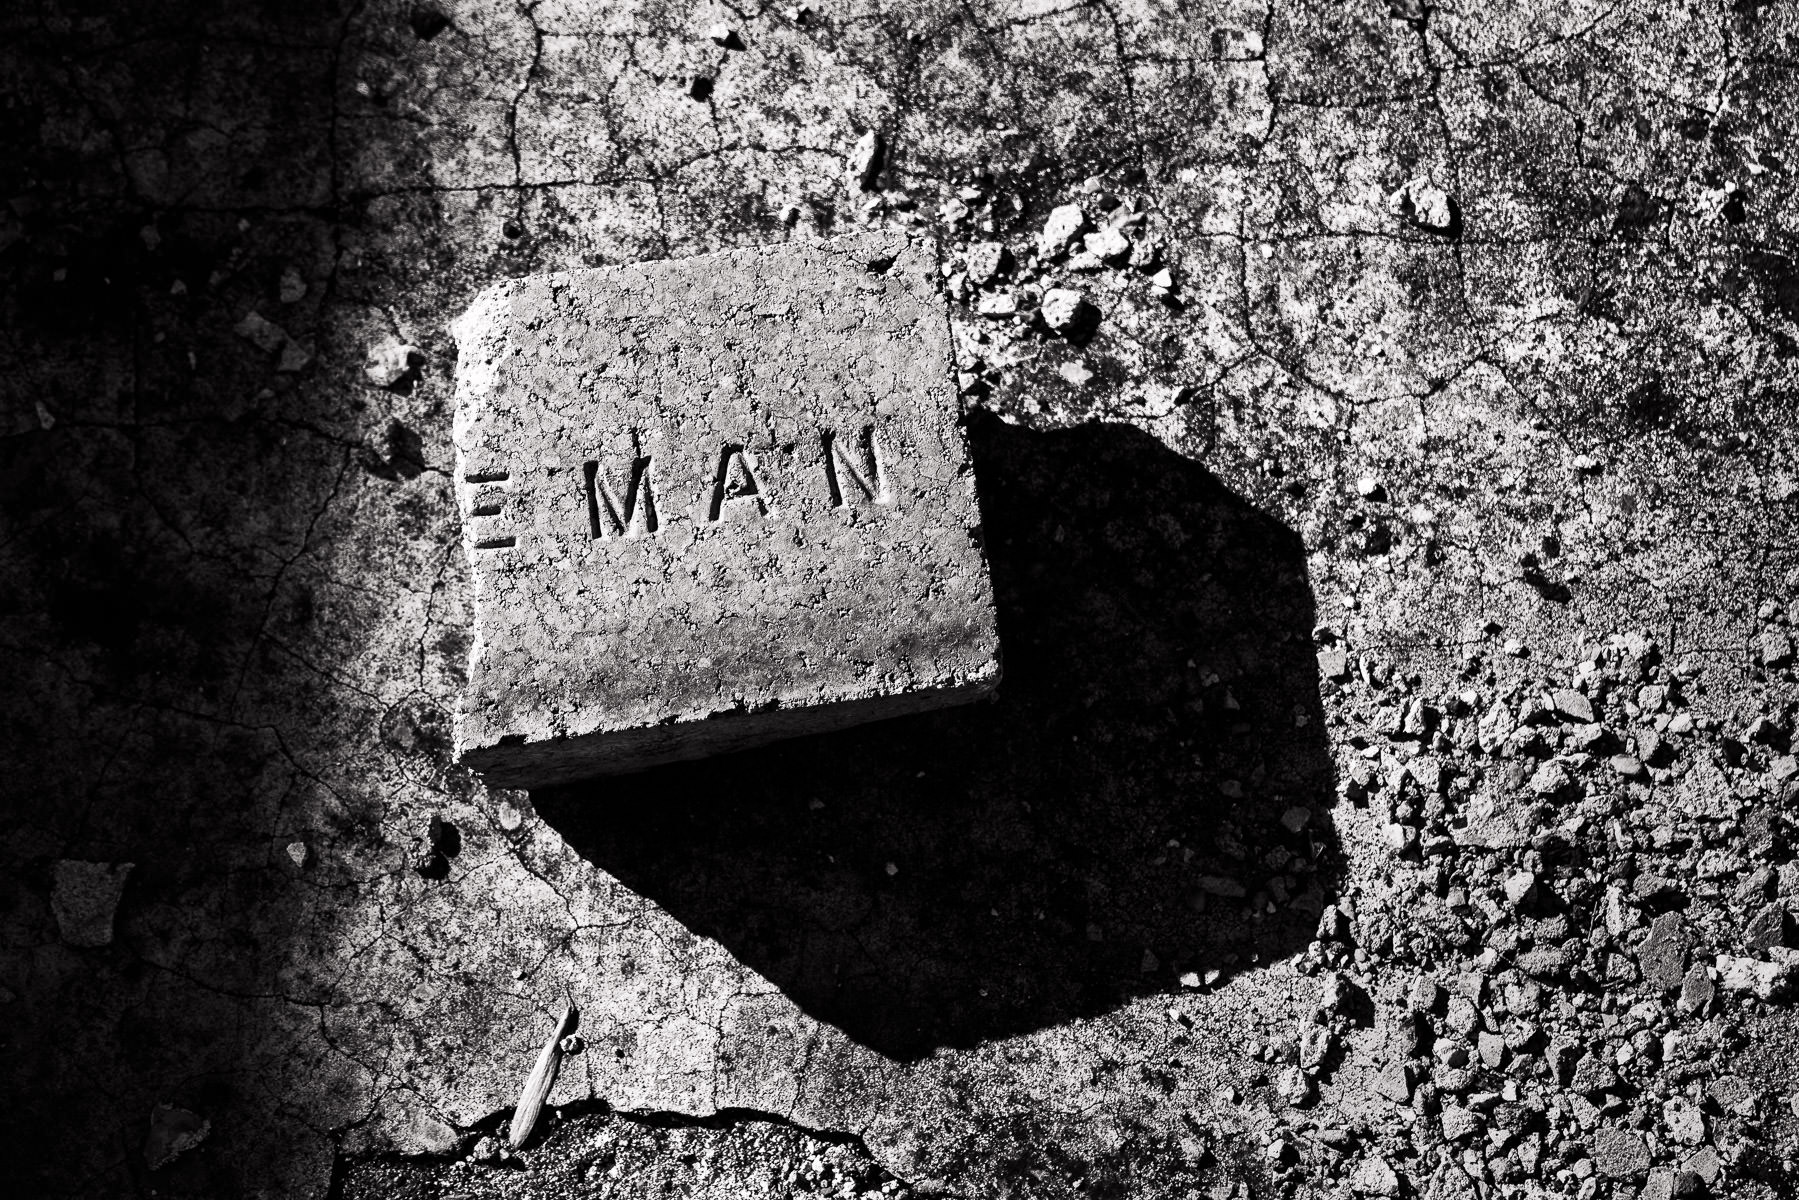 A old brick found among the ruins of Fort Washita, Oklahoma.